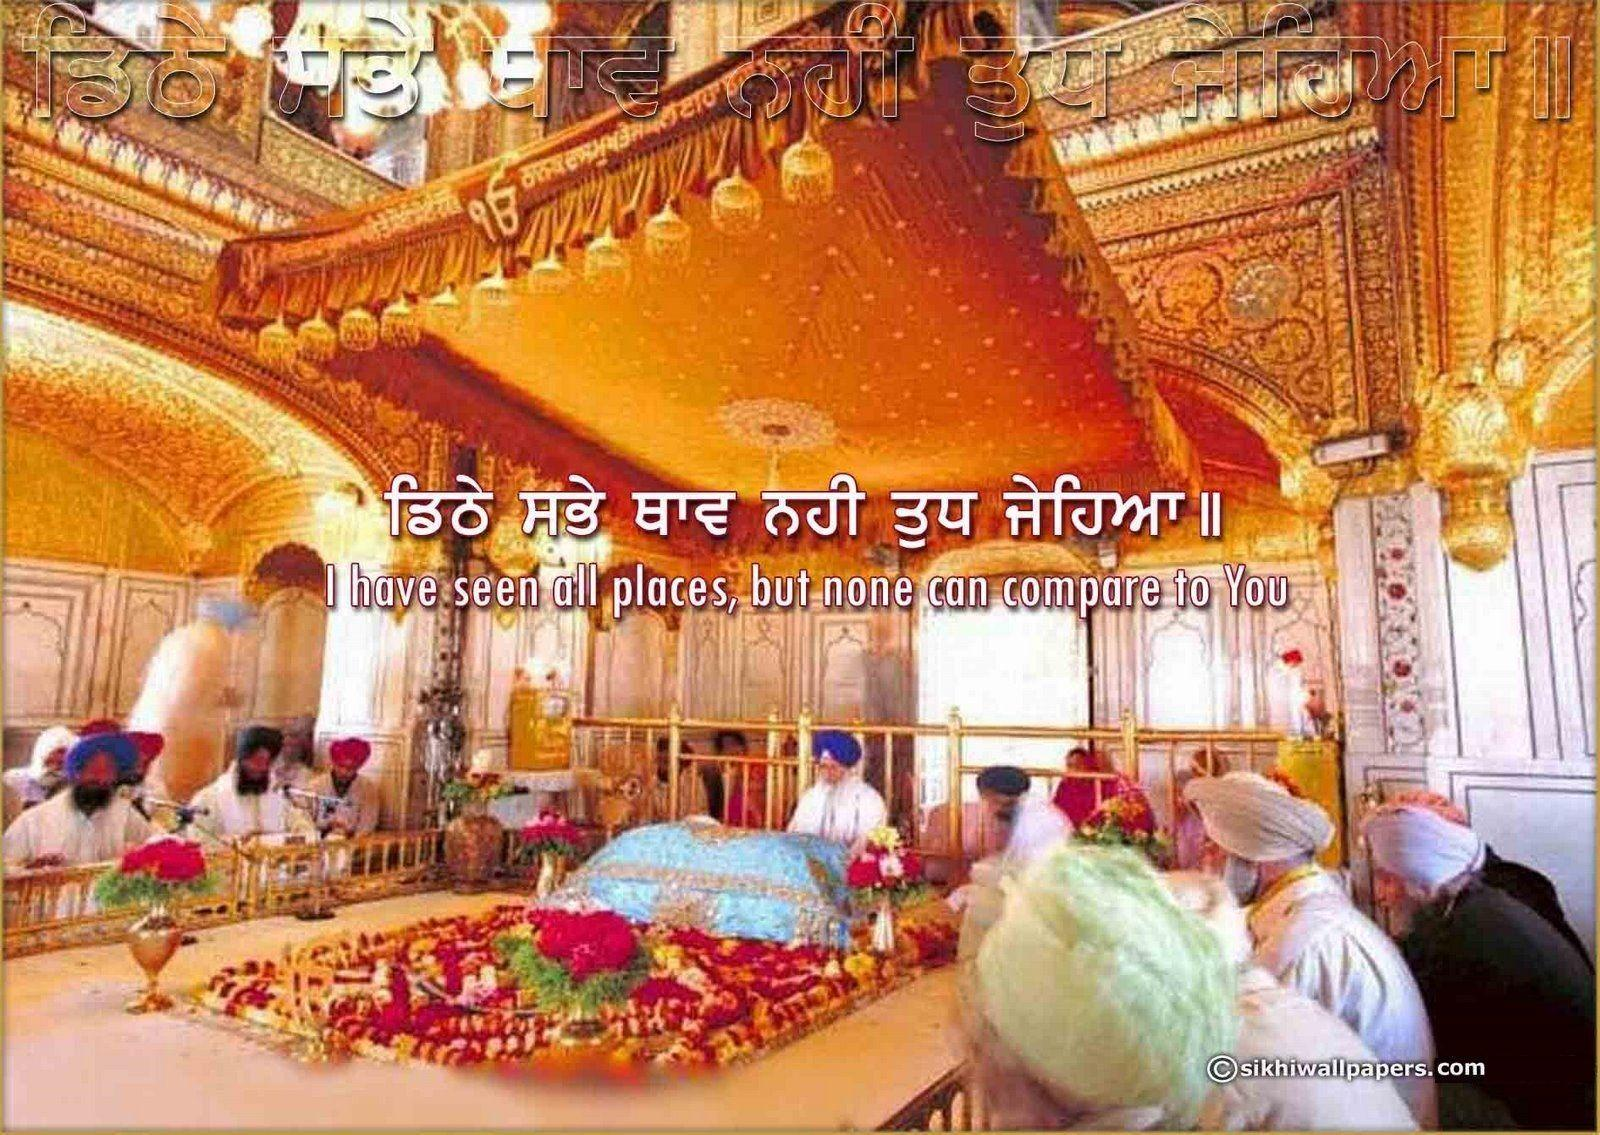 Sikh Wallpapers Hd For Iphone 5 Old Golden Temple Wallpapers Wallpaper Cave